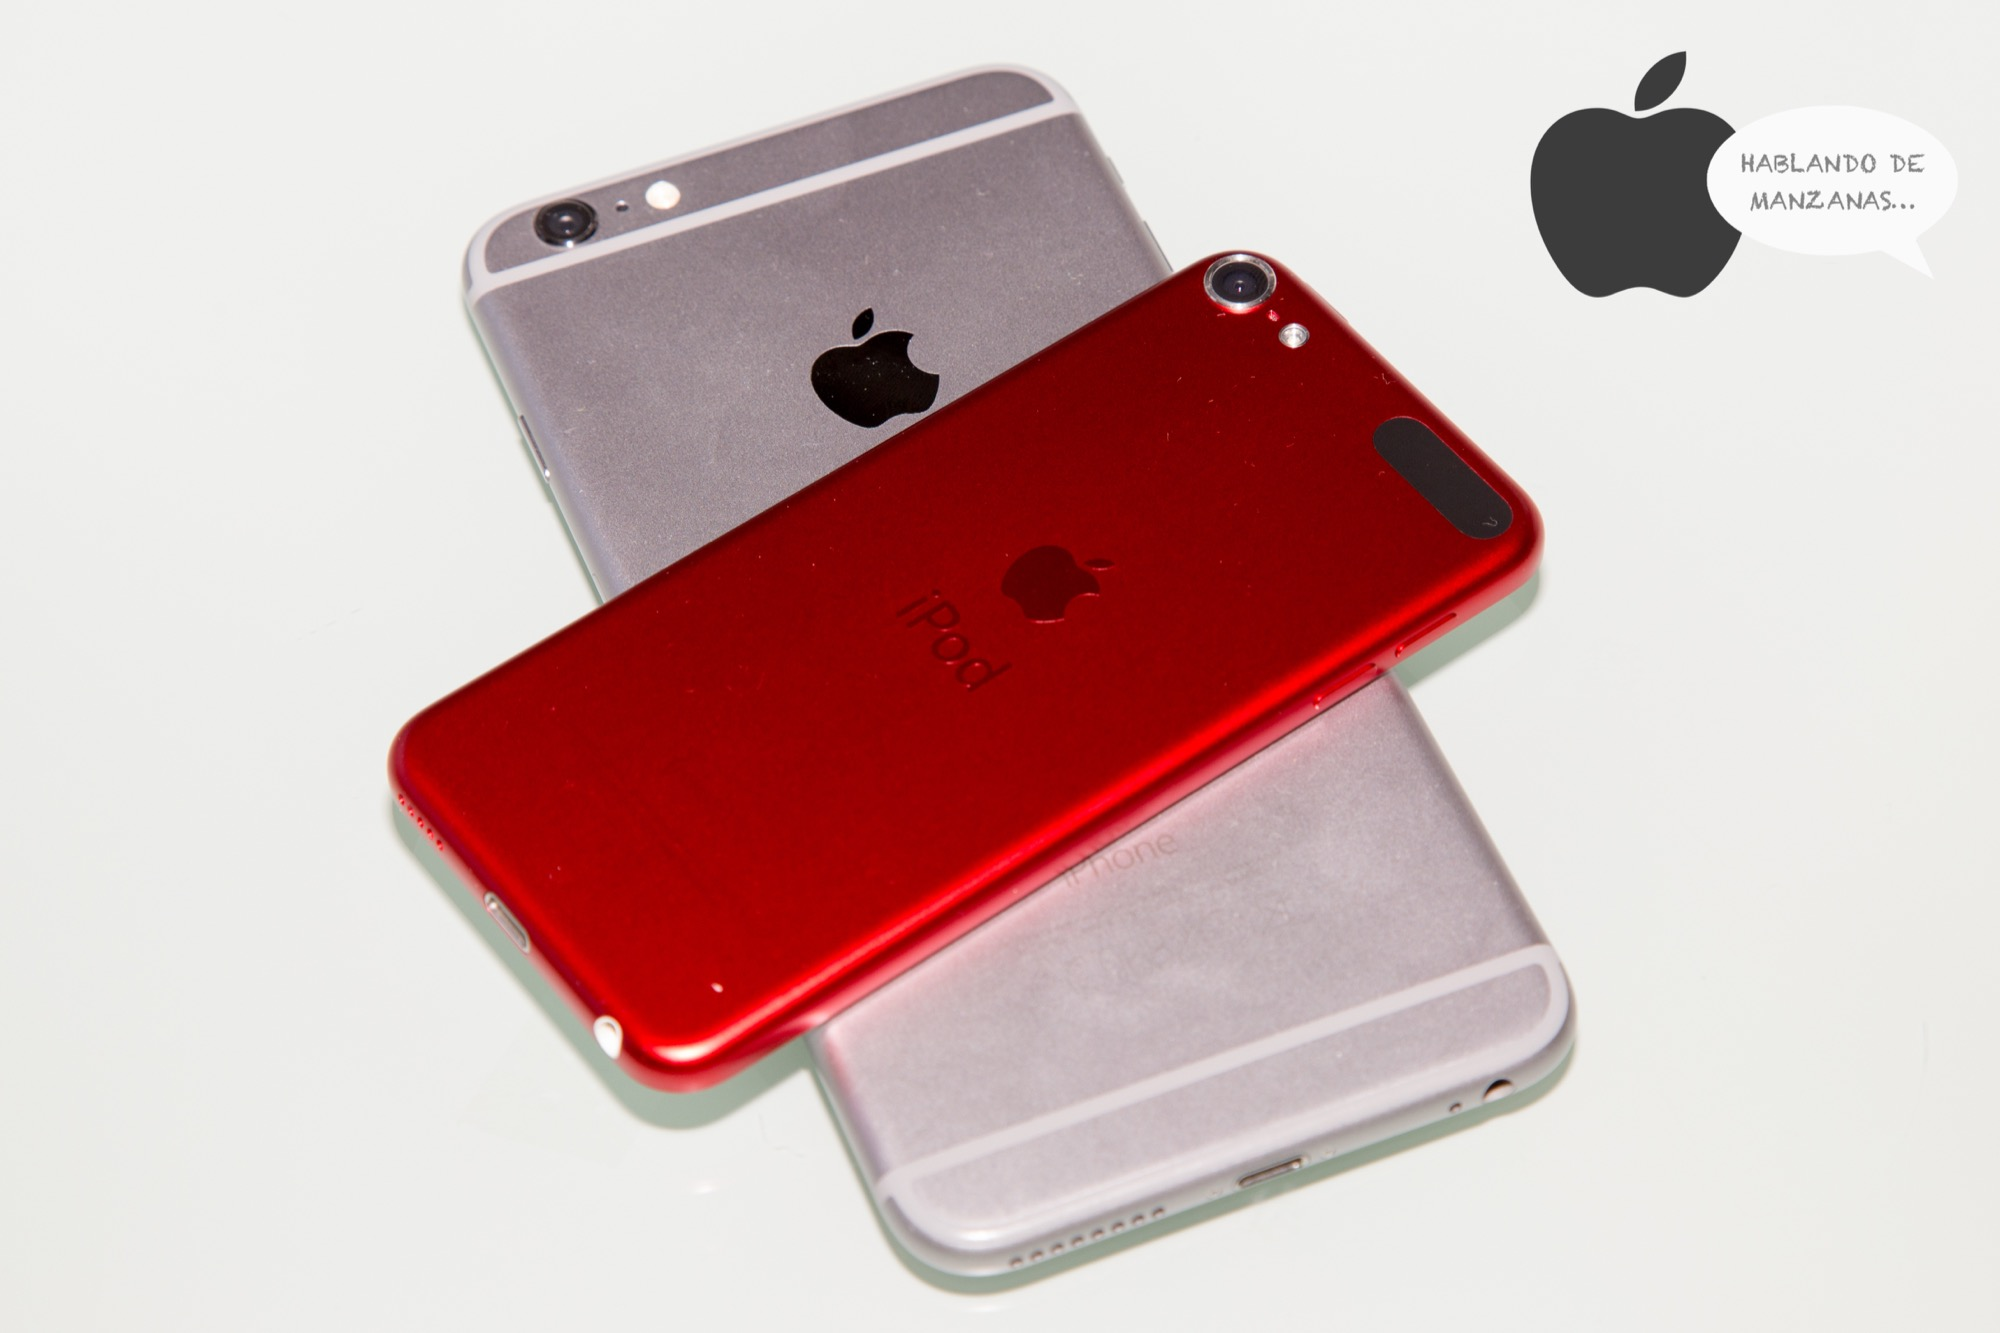 ipod touch 6g 2015 unboxing y an225lisis hablando de